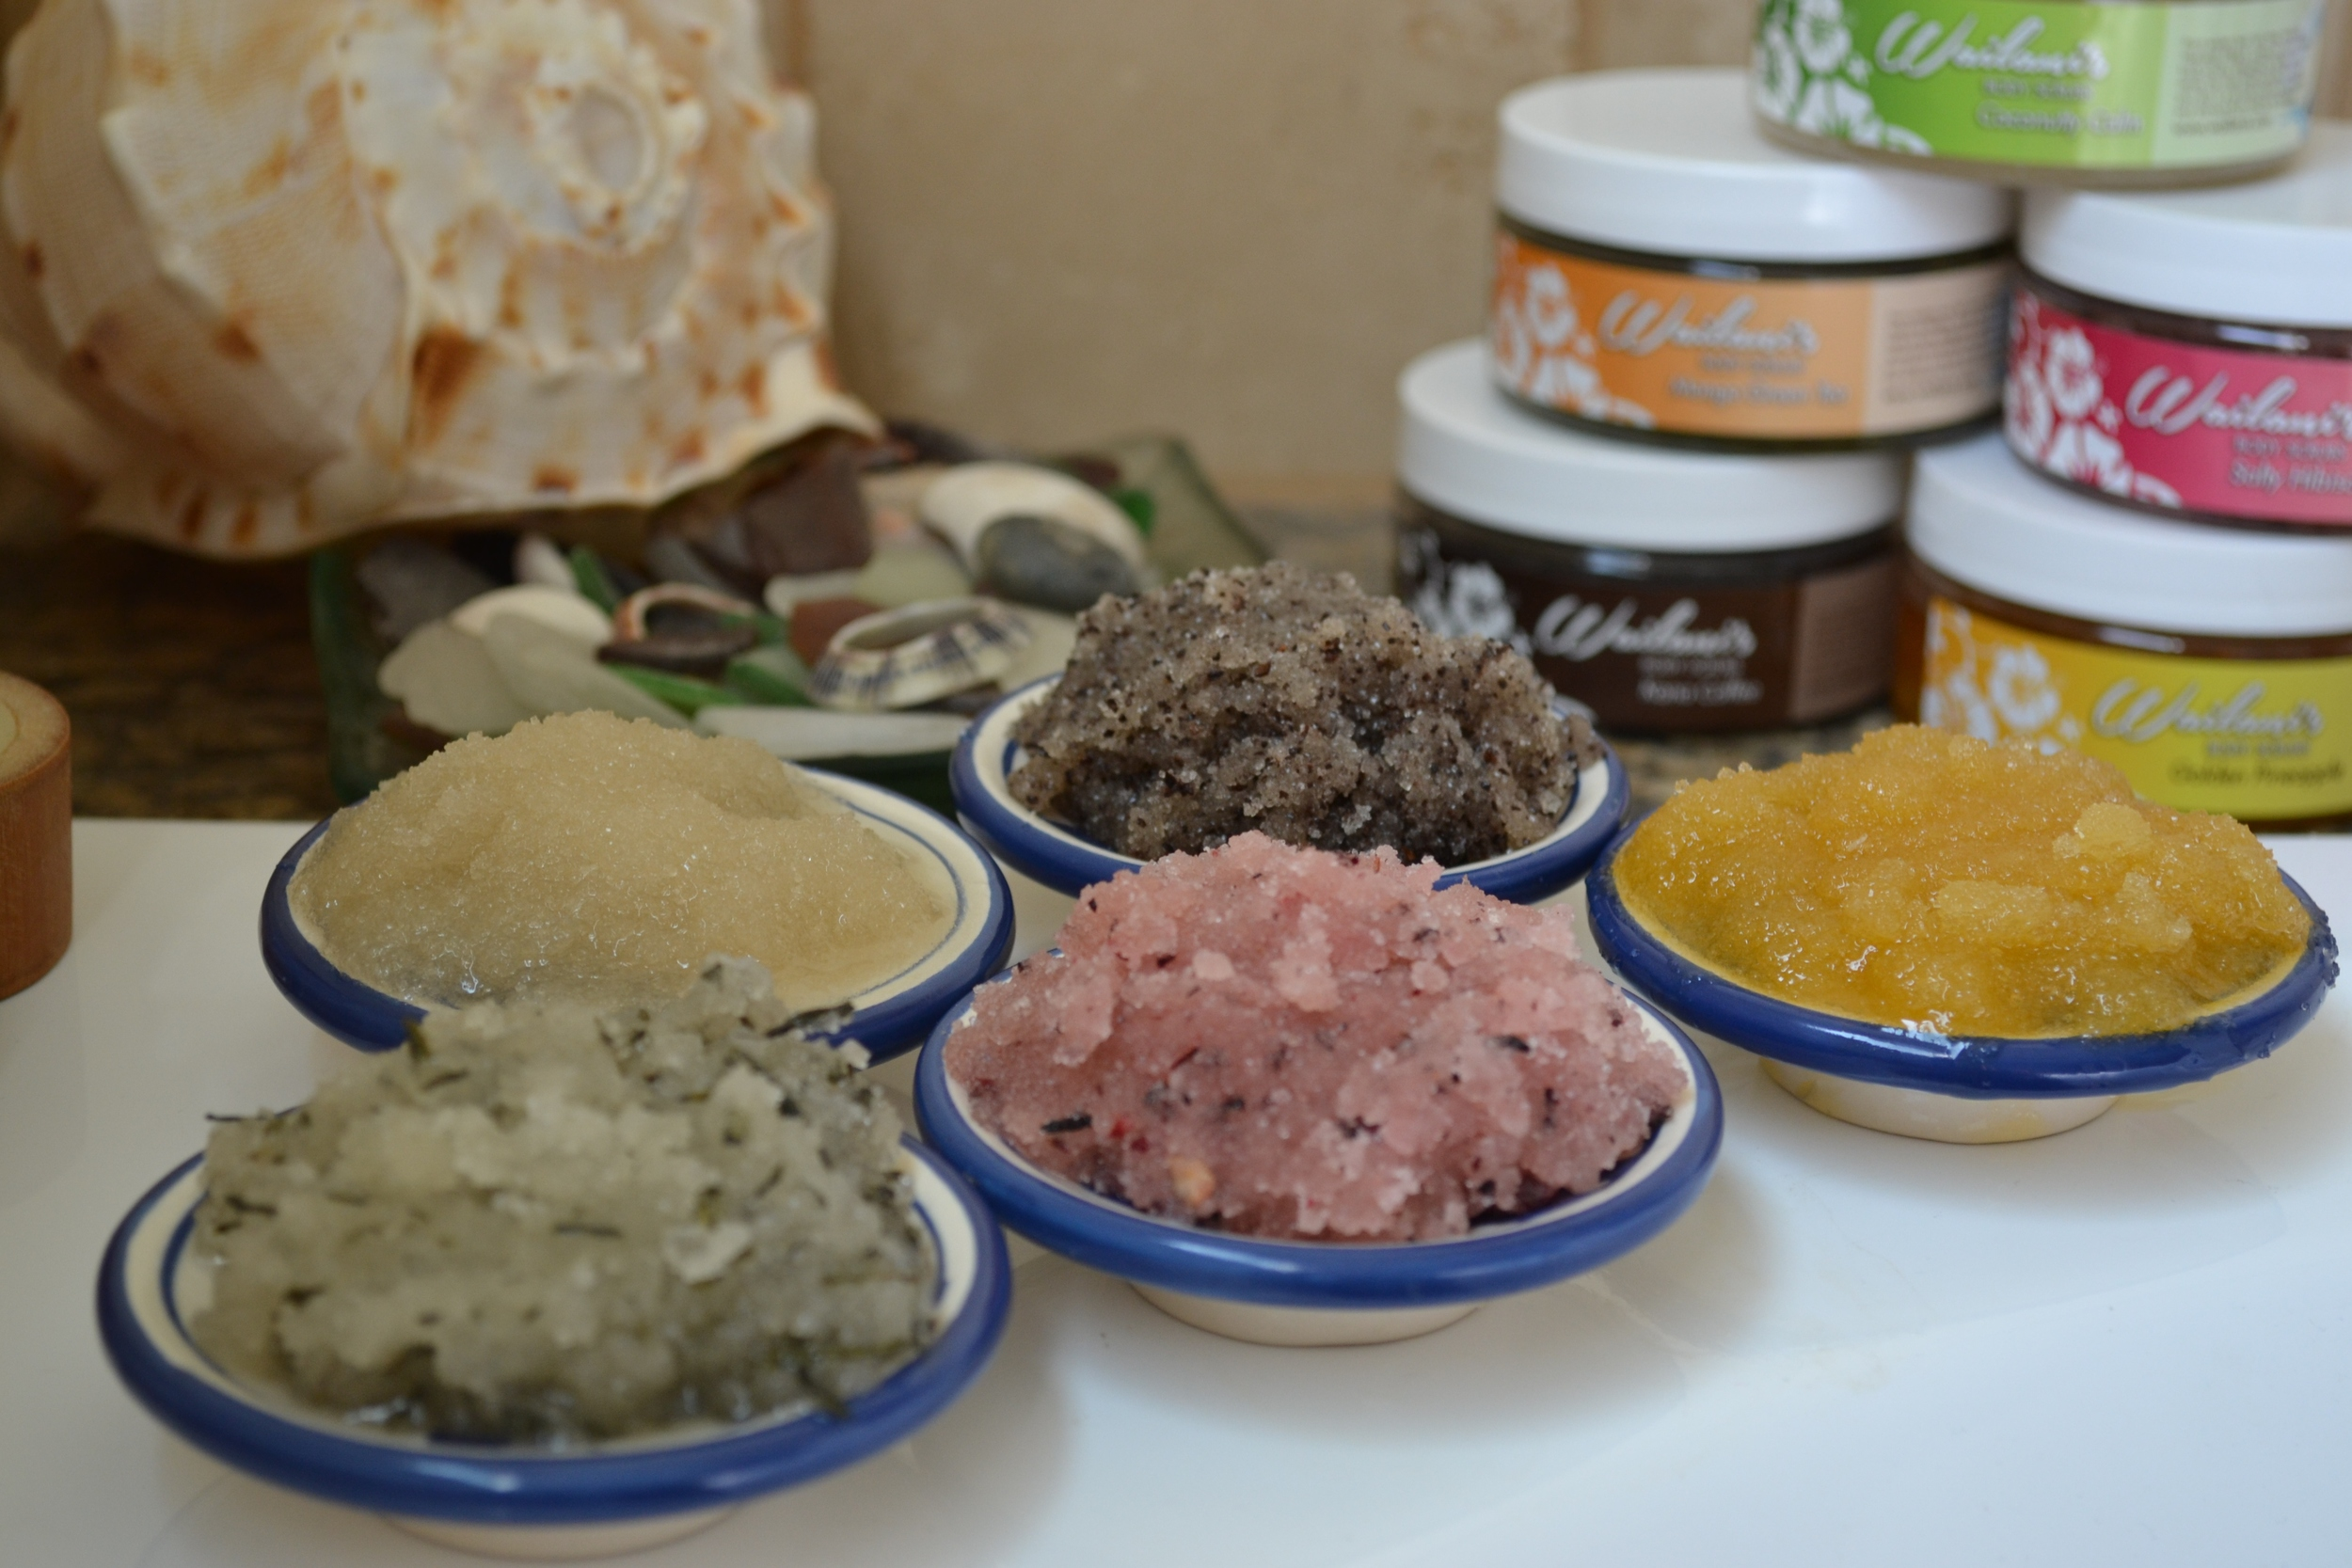 Wailani's Body Scrubs